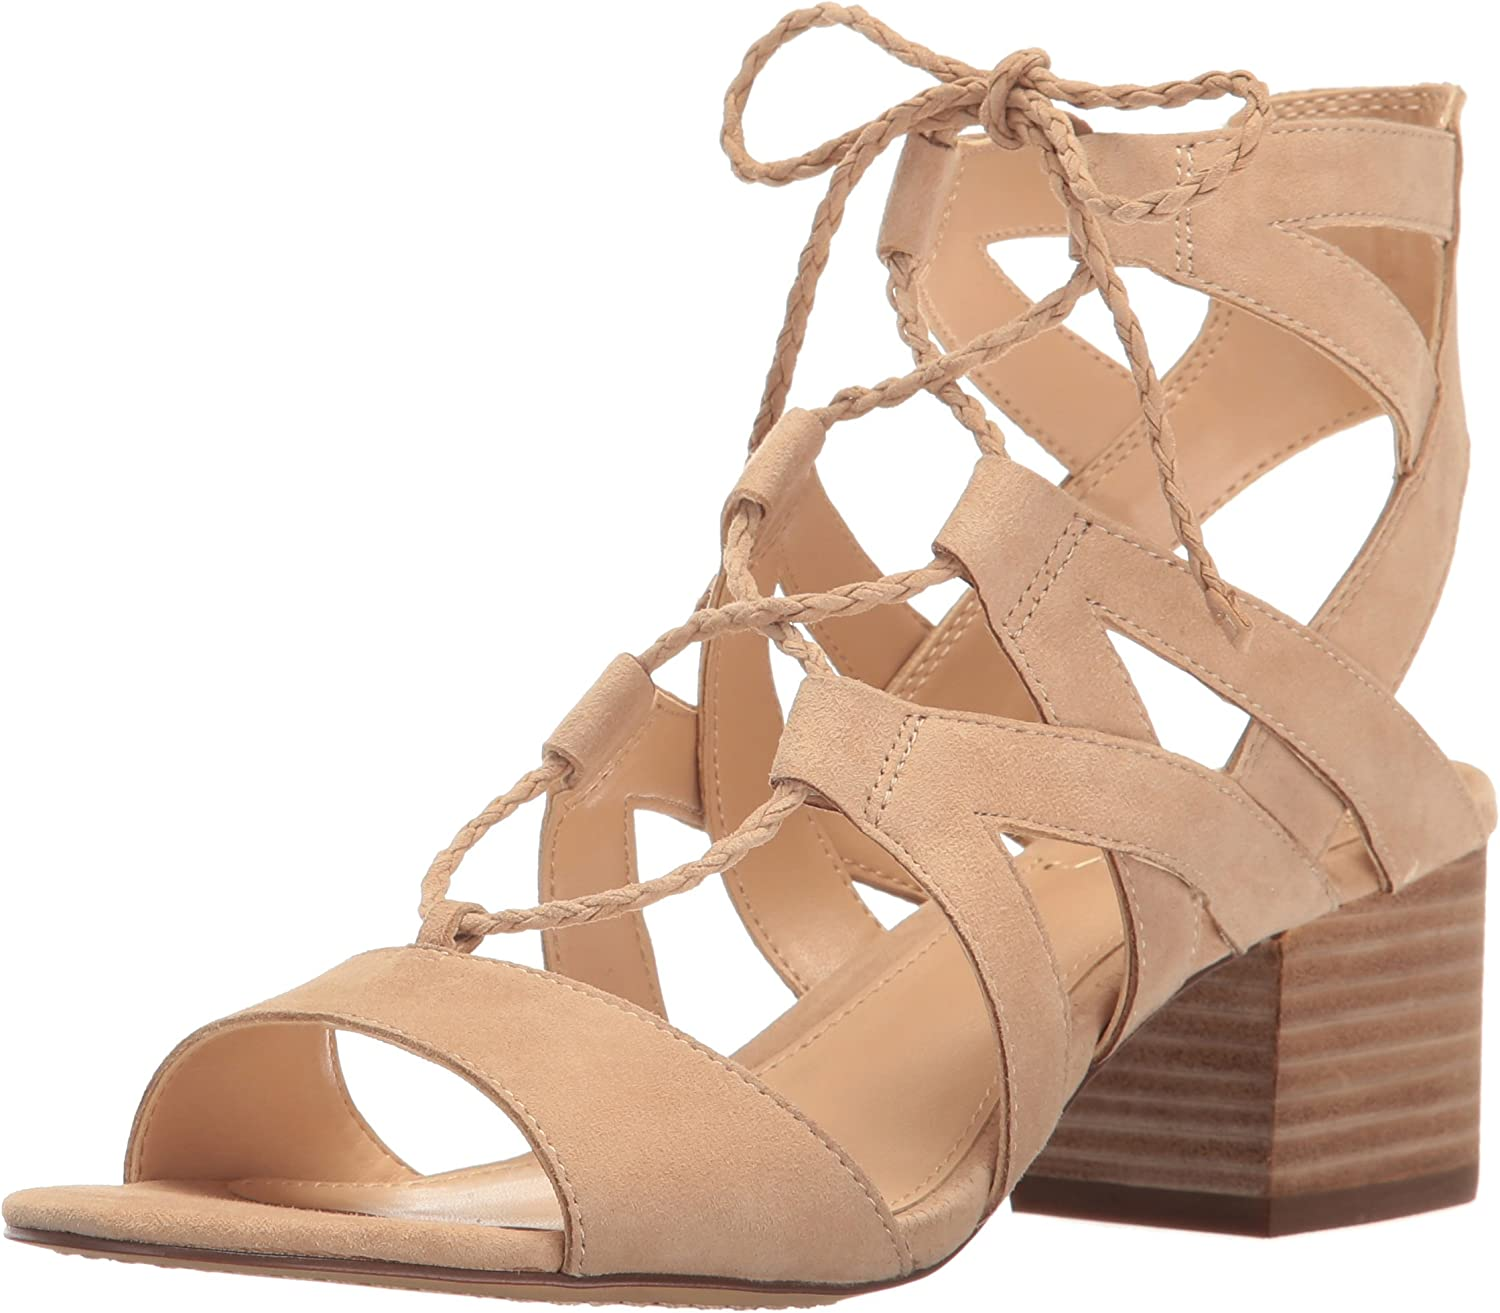 Vince Camuto Womens Fauna Dress Sandal